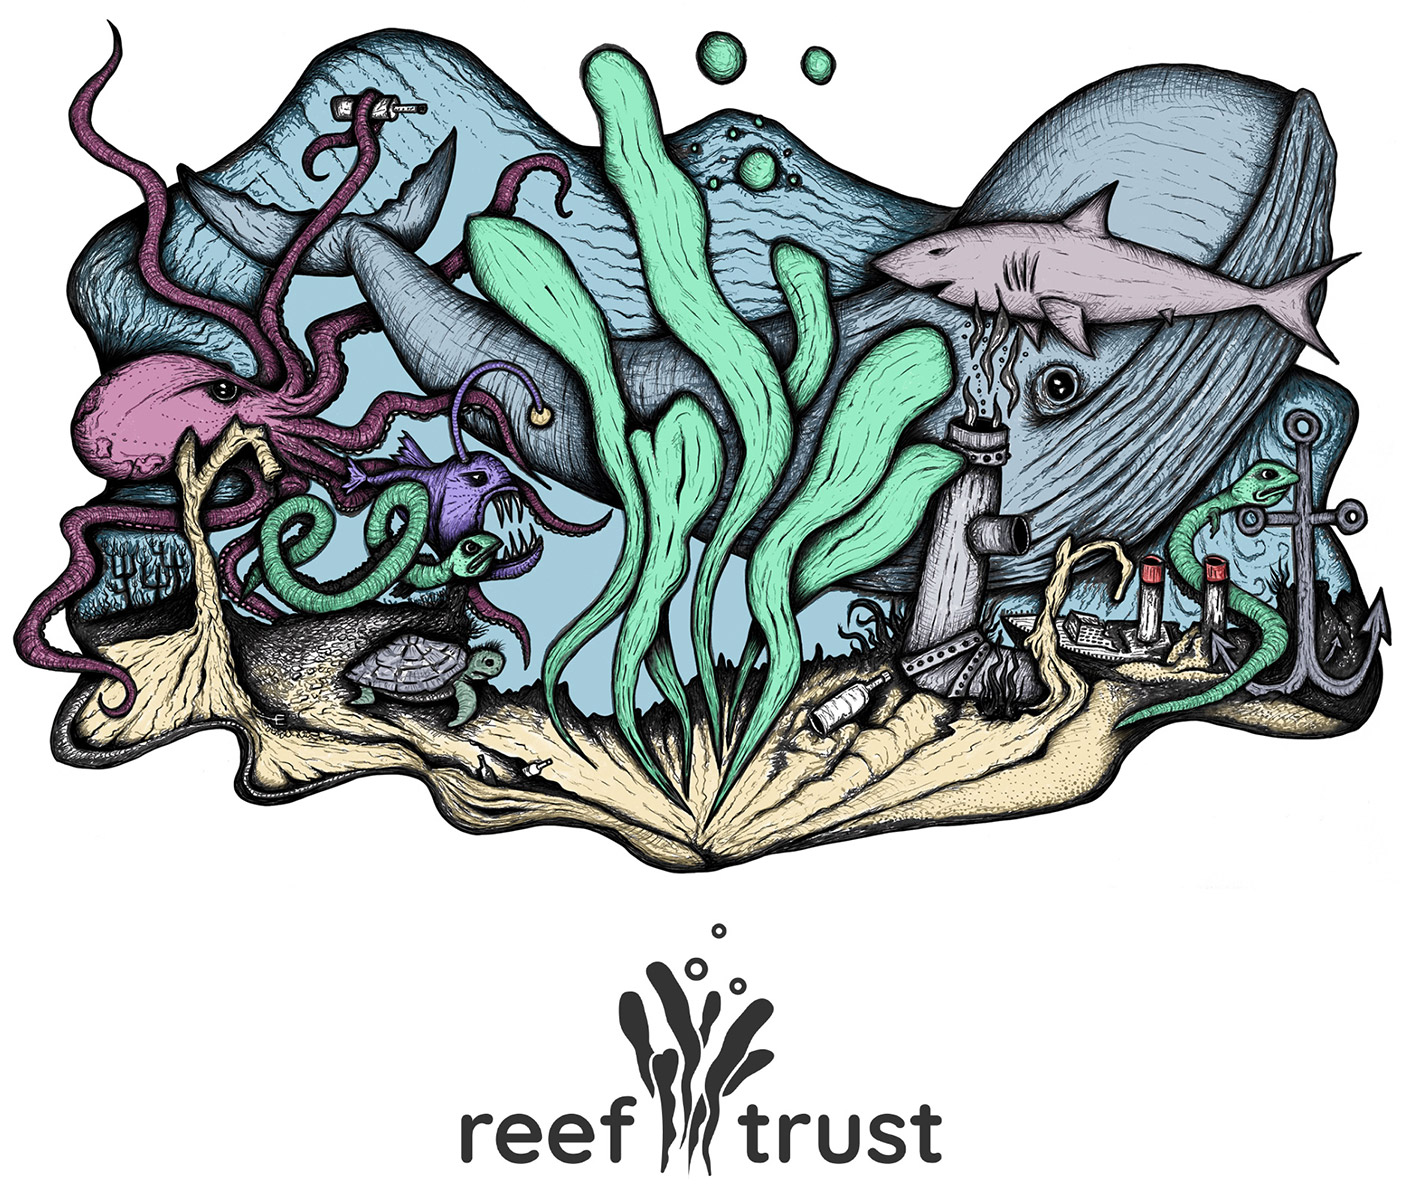 Reef Trust T-shirt Design